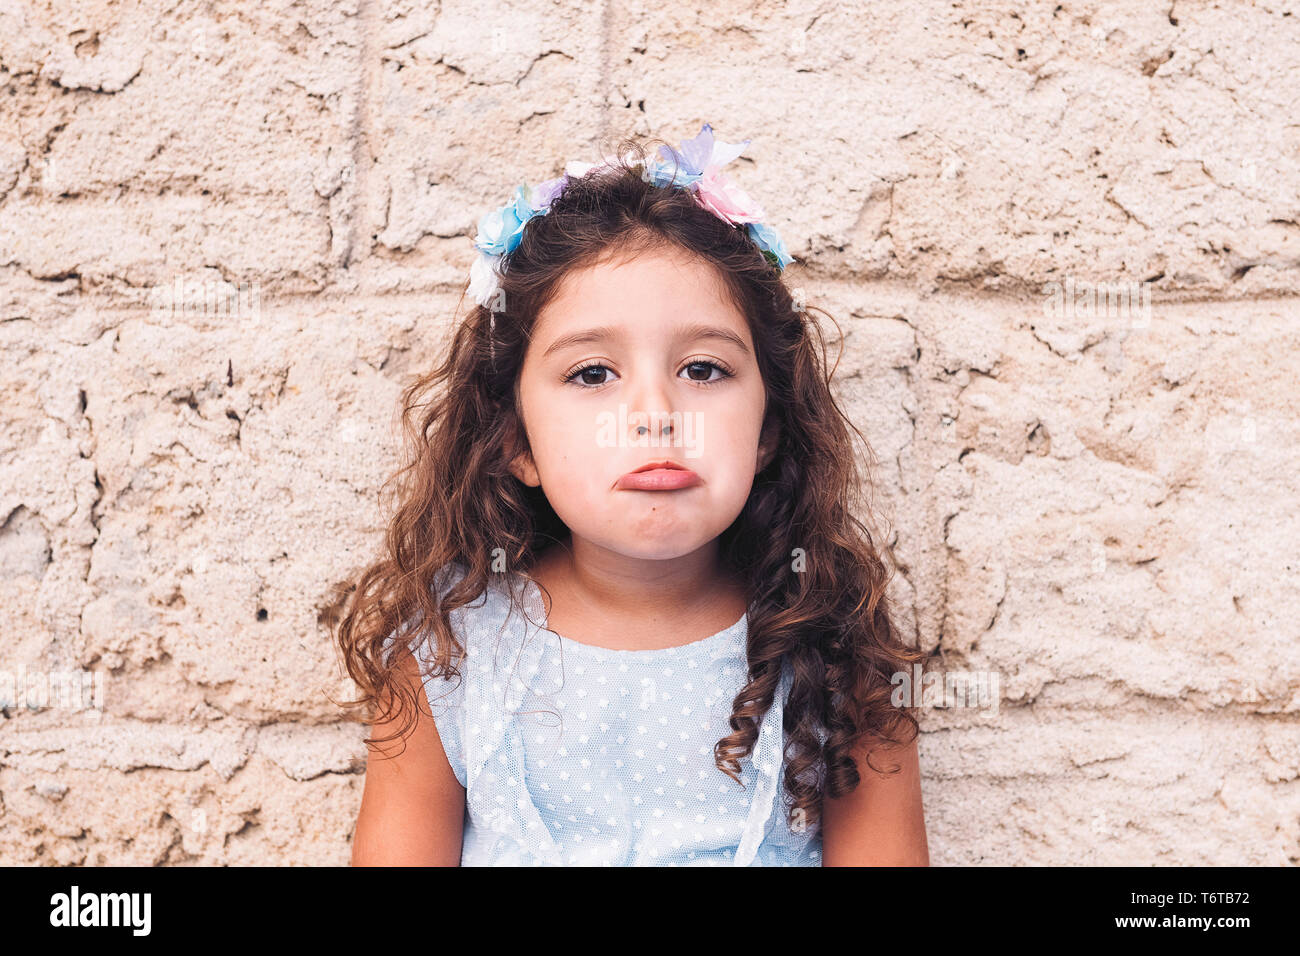 little girl making teasing with sad face, is in front of a stone wall and wears a blue dress and a flower headband Stock Photo